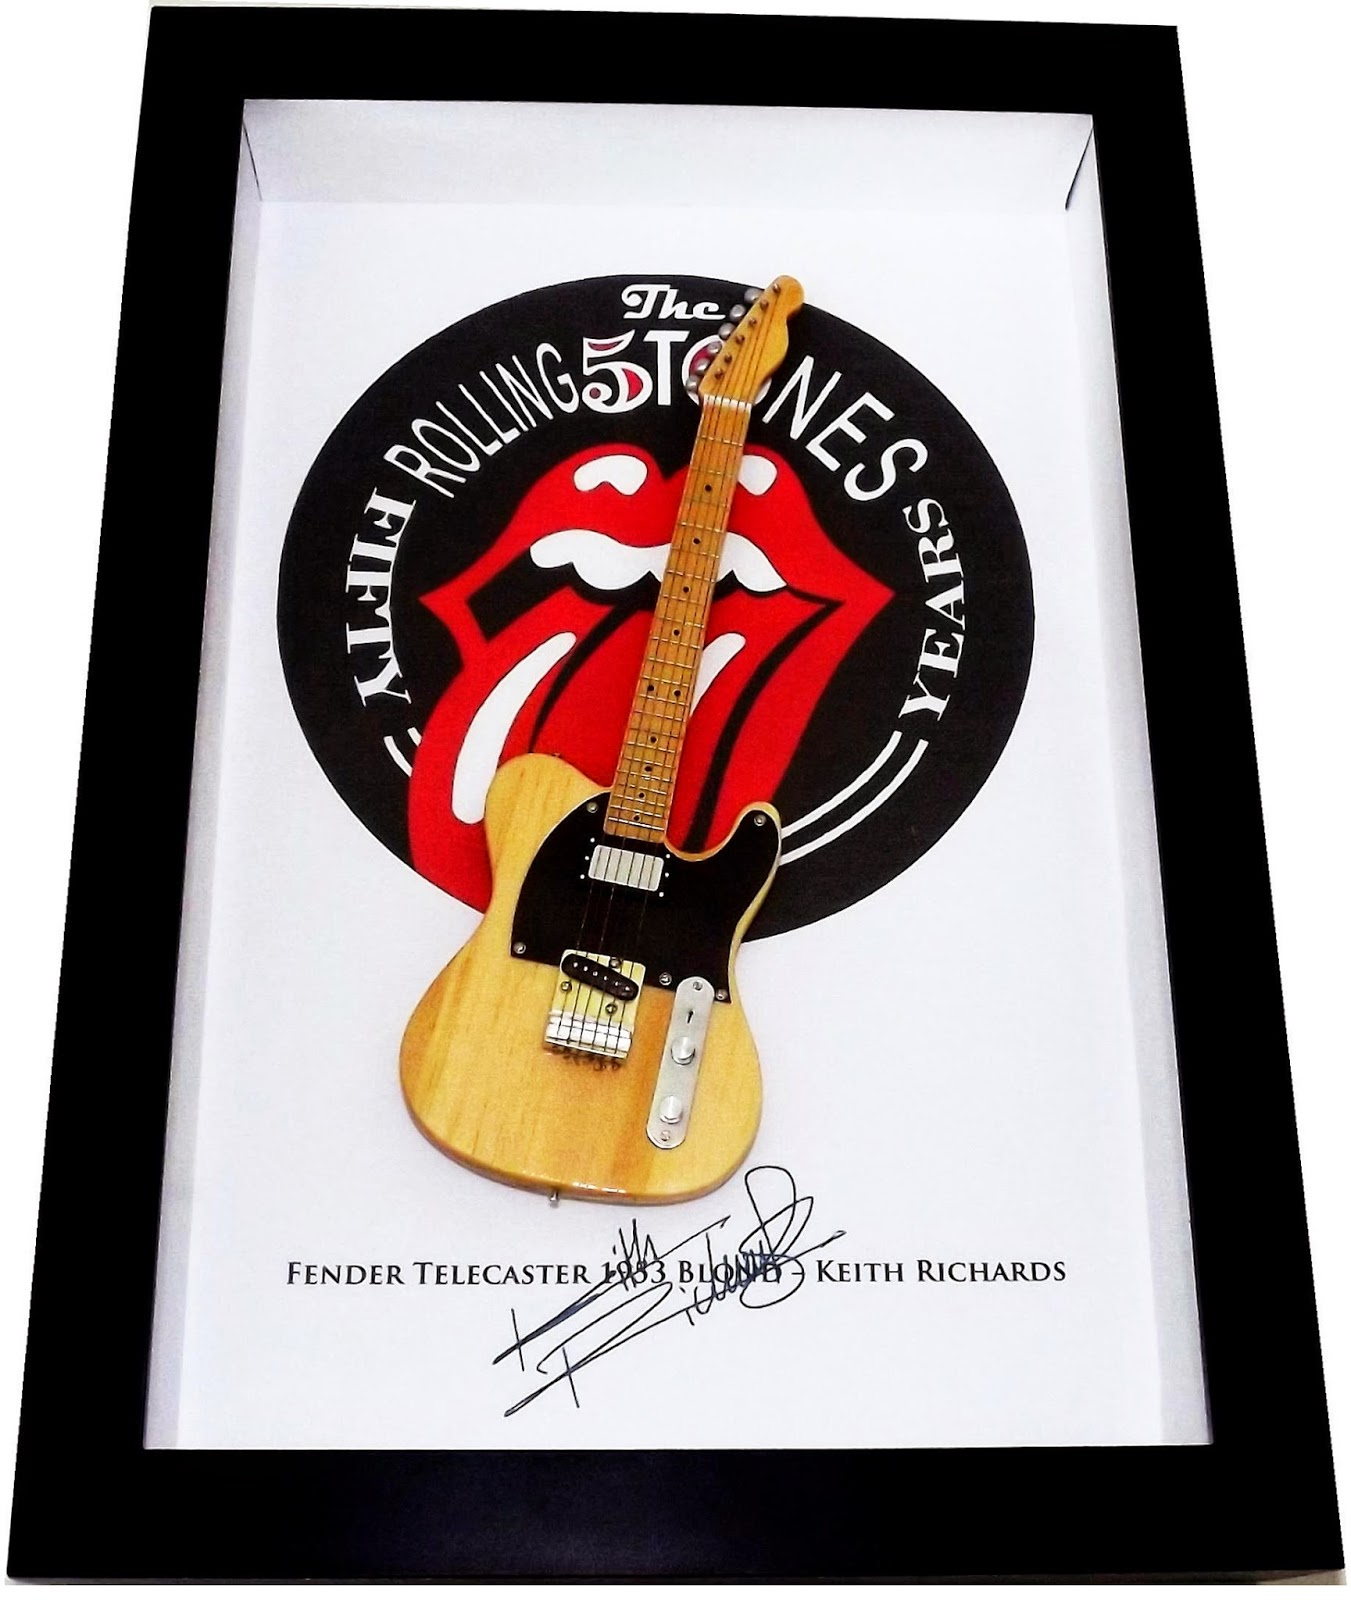 Guitarra em miniaturas Fender Telecaster Keith Richards Micawber